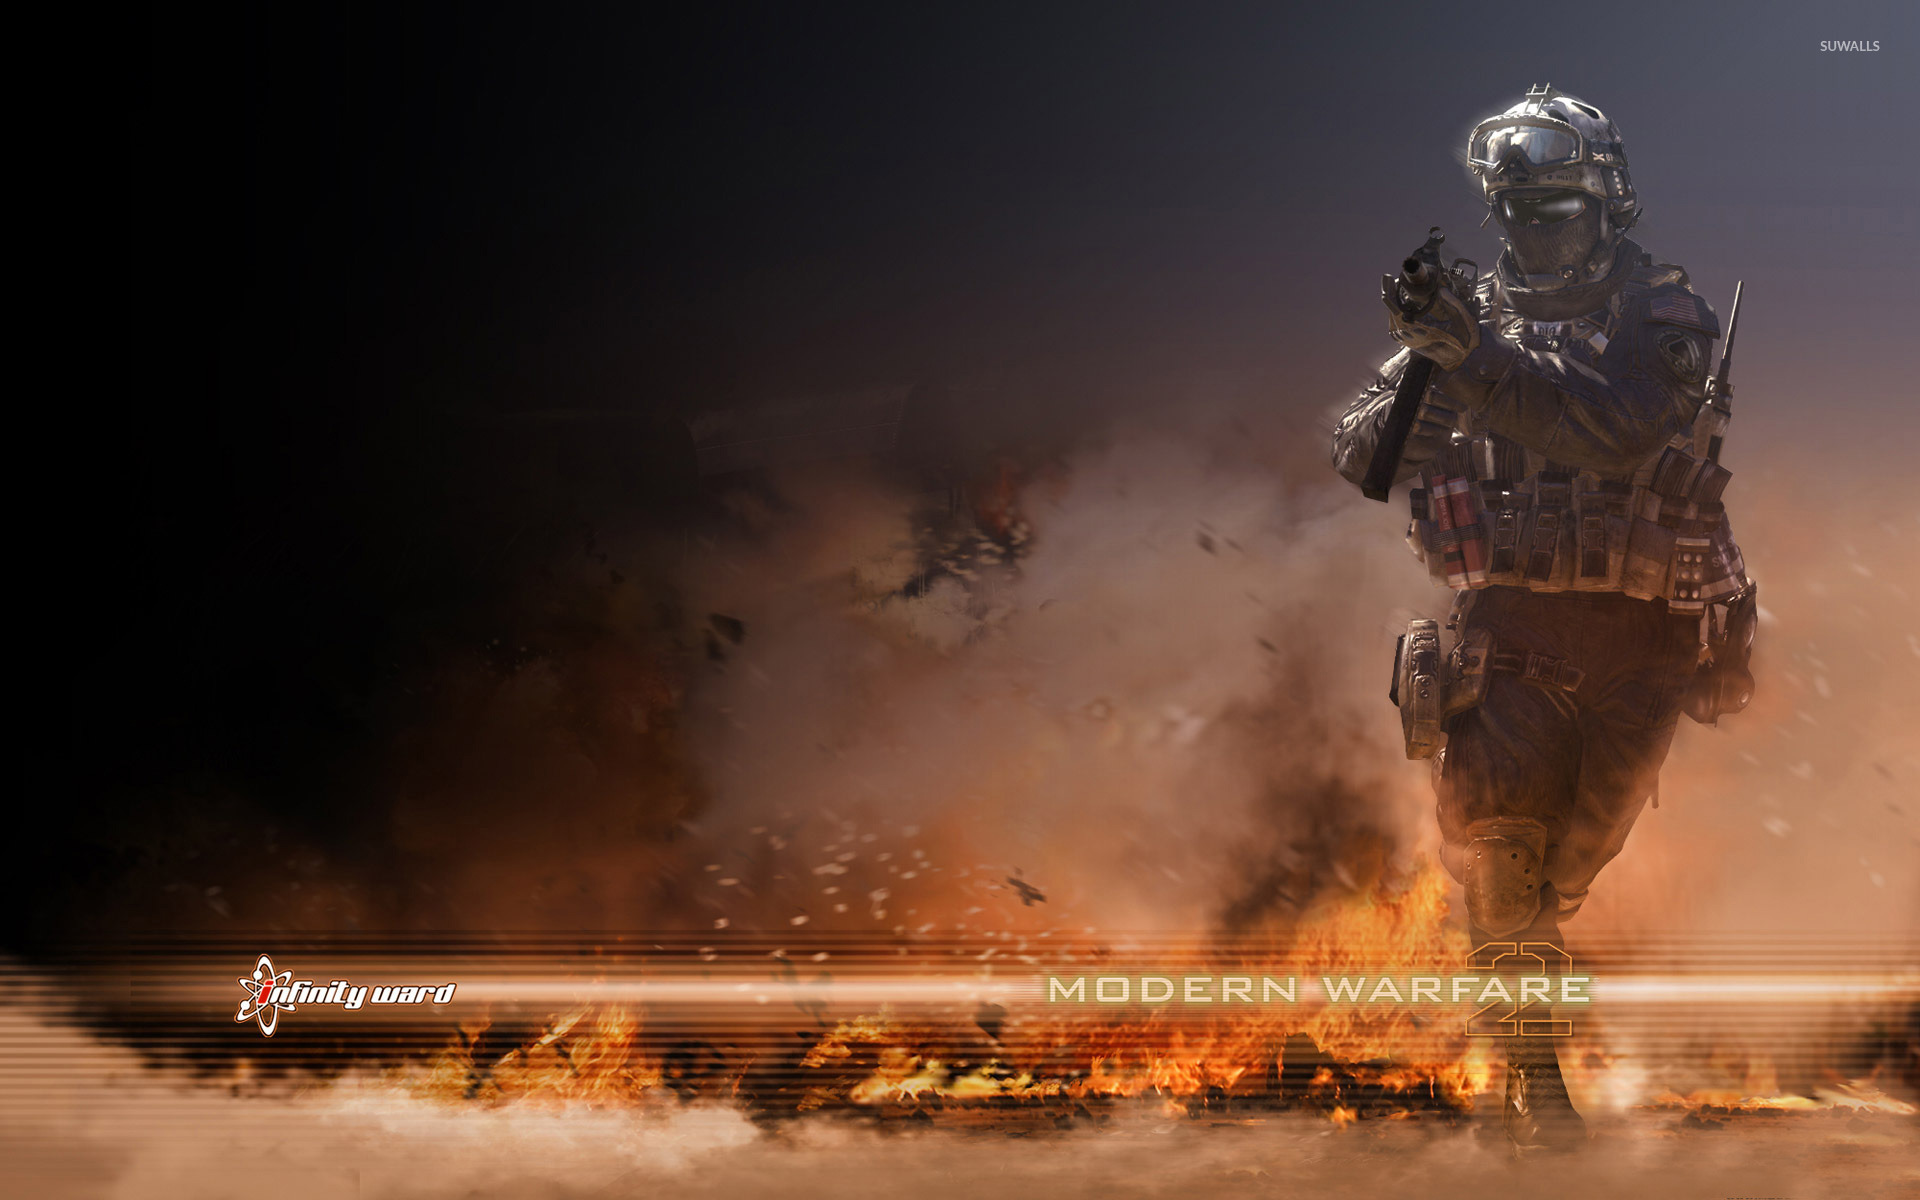 call of duty modern warfare 2 wallpapers